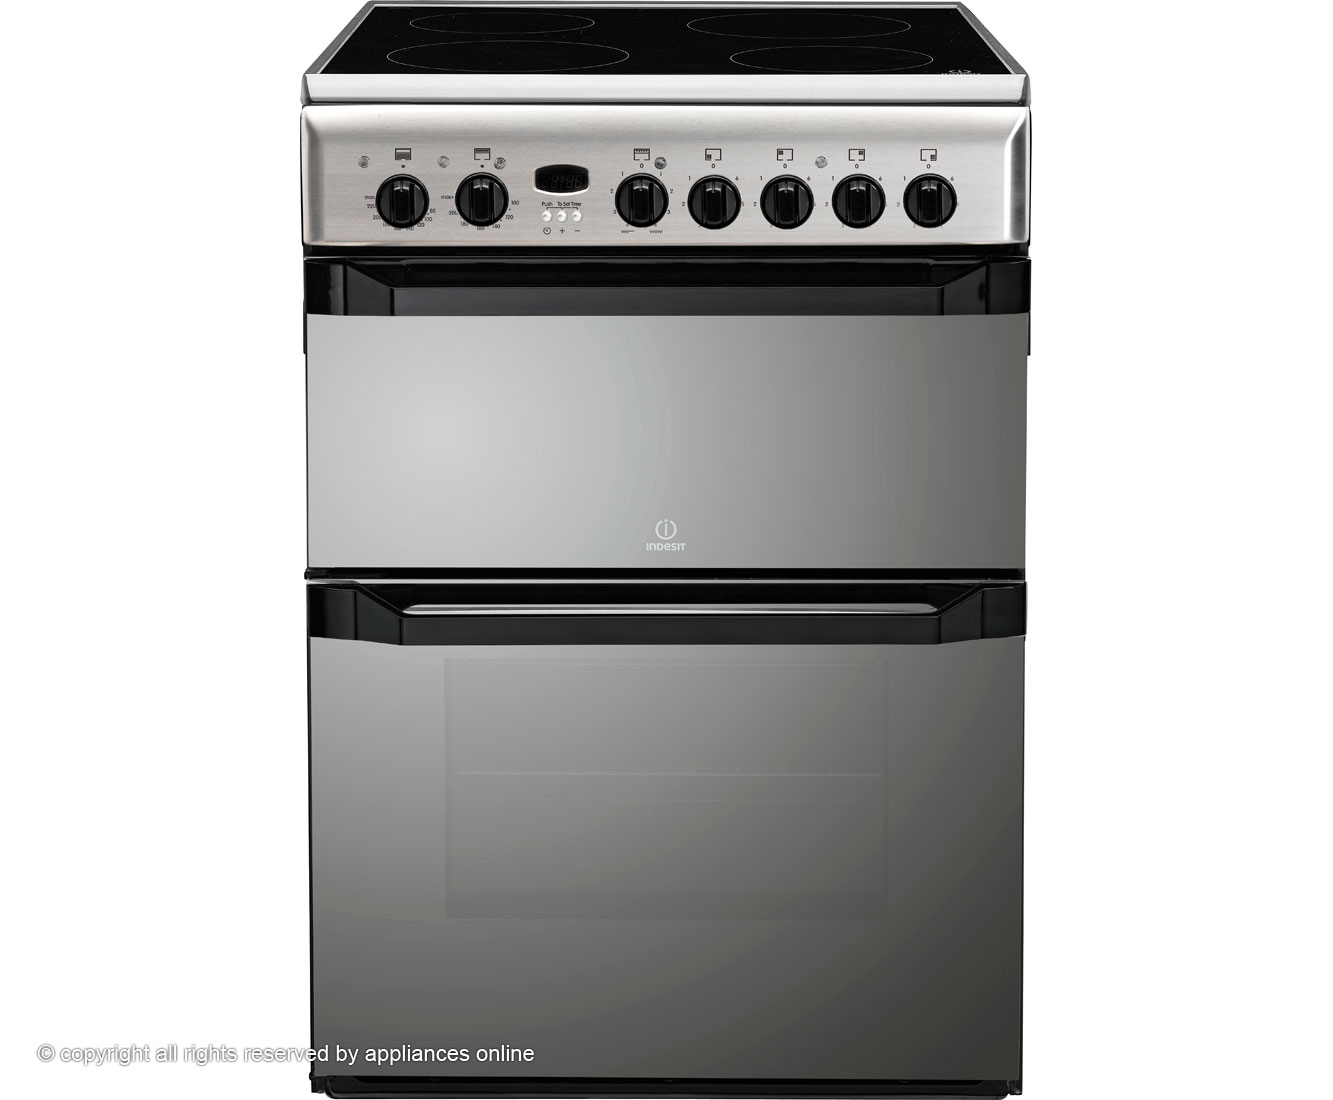 Indesit Advance ID60C2MS Electric Cooker with Ceramic Hob - Silver